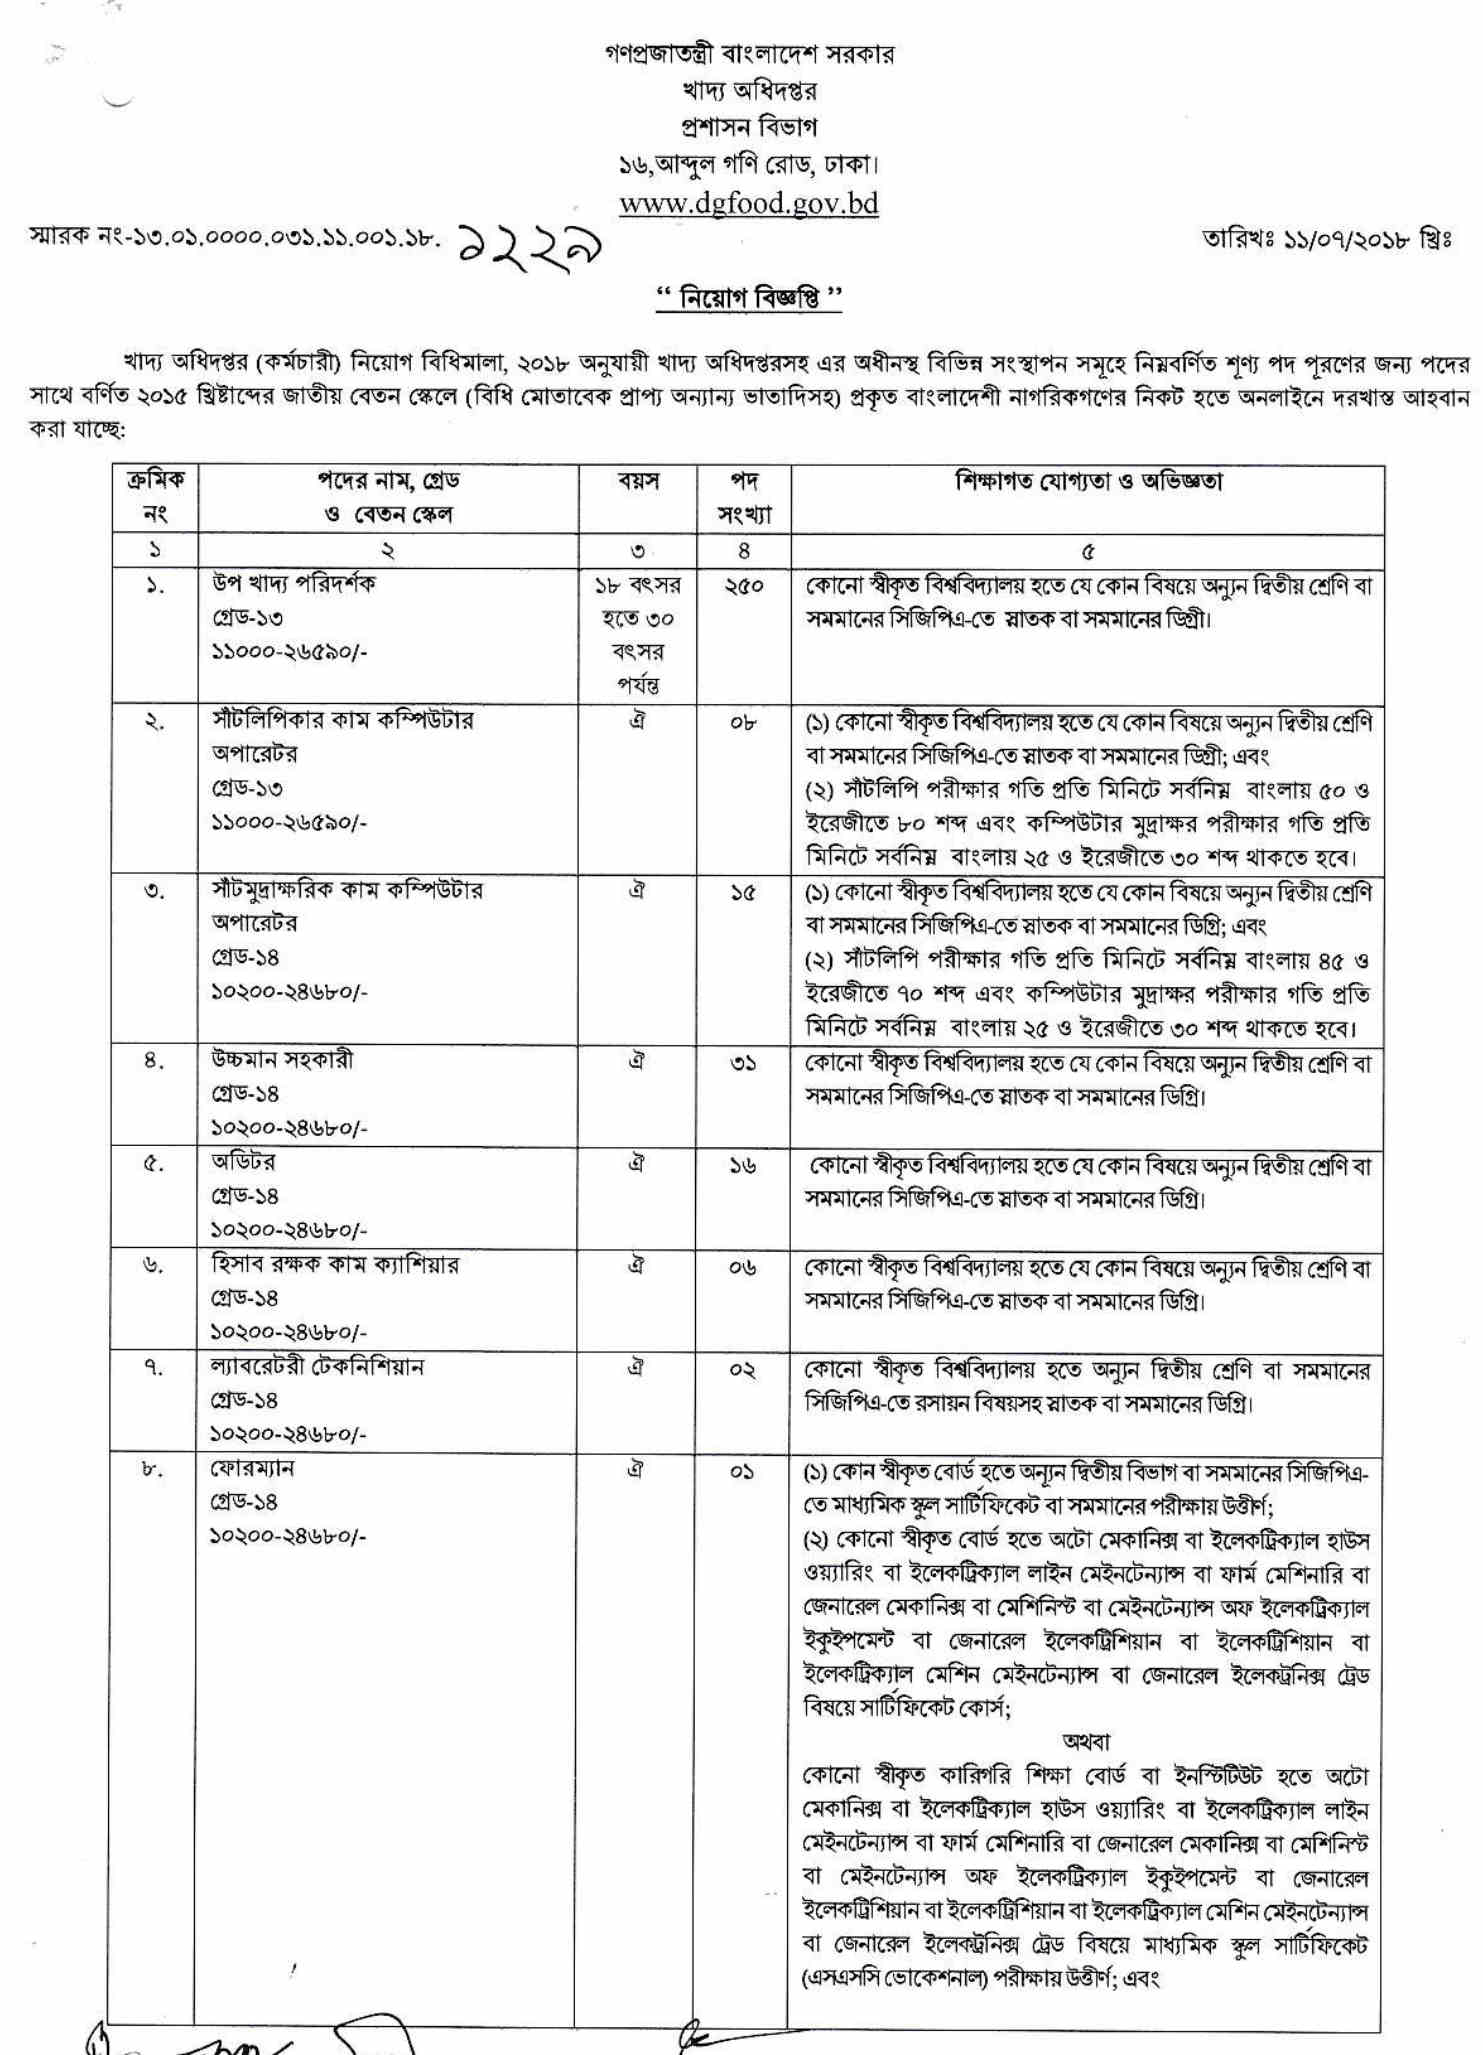 Ministry of Food Job Circular